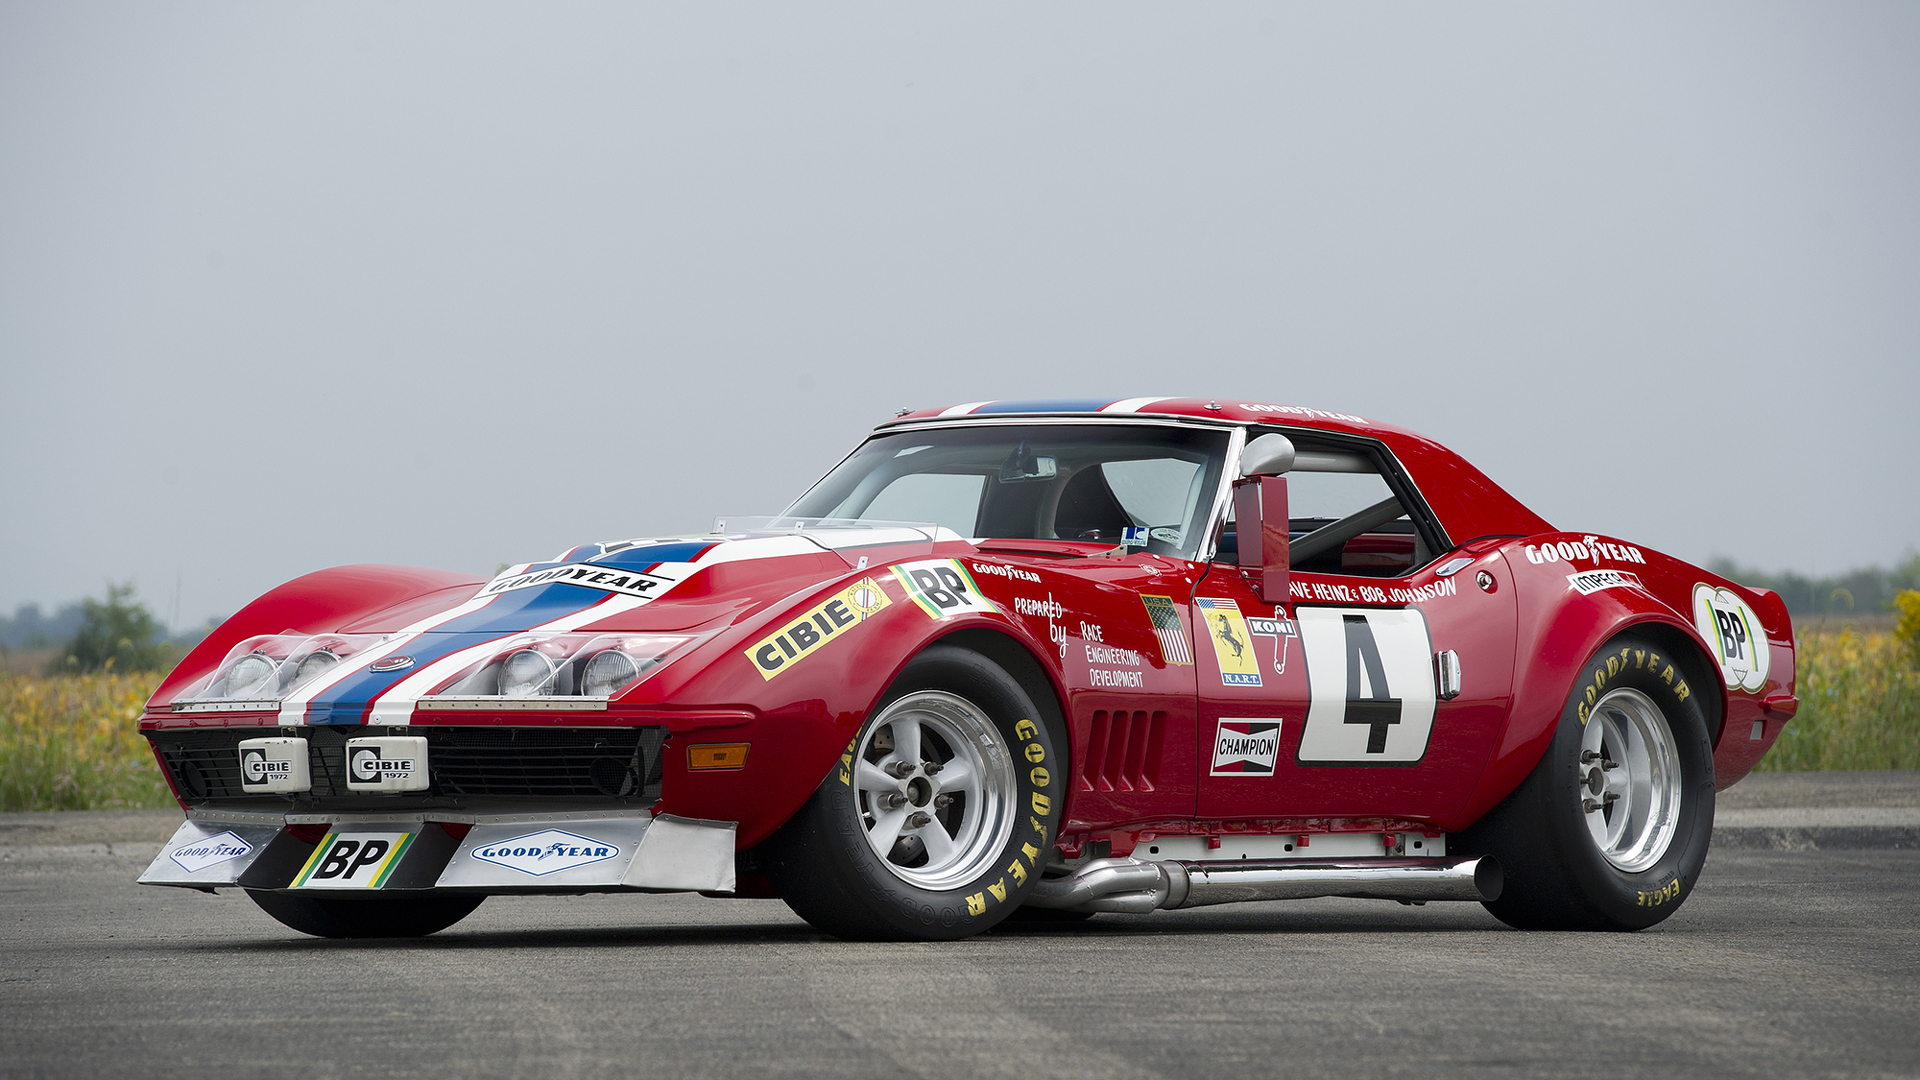 The Corvette That Masqueraded As A Ferrari To Race At Le Mans Go Back Gt Gallery For Automotive Electrical Circuit Symbols